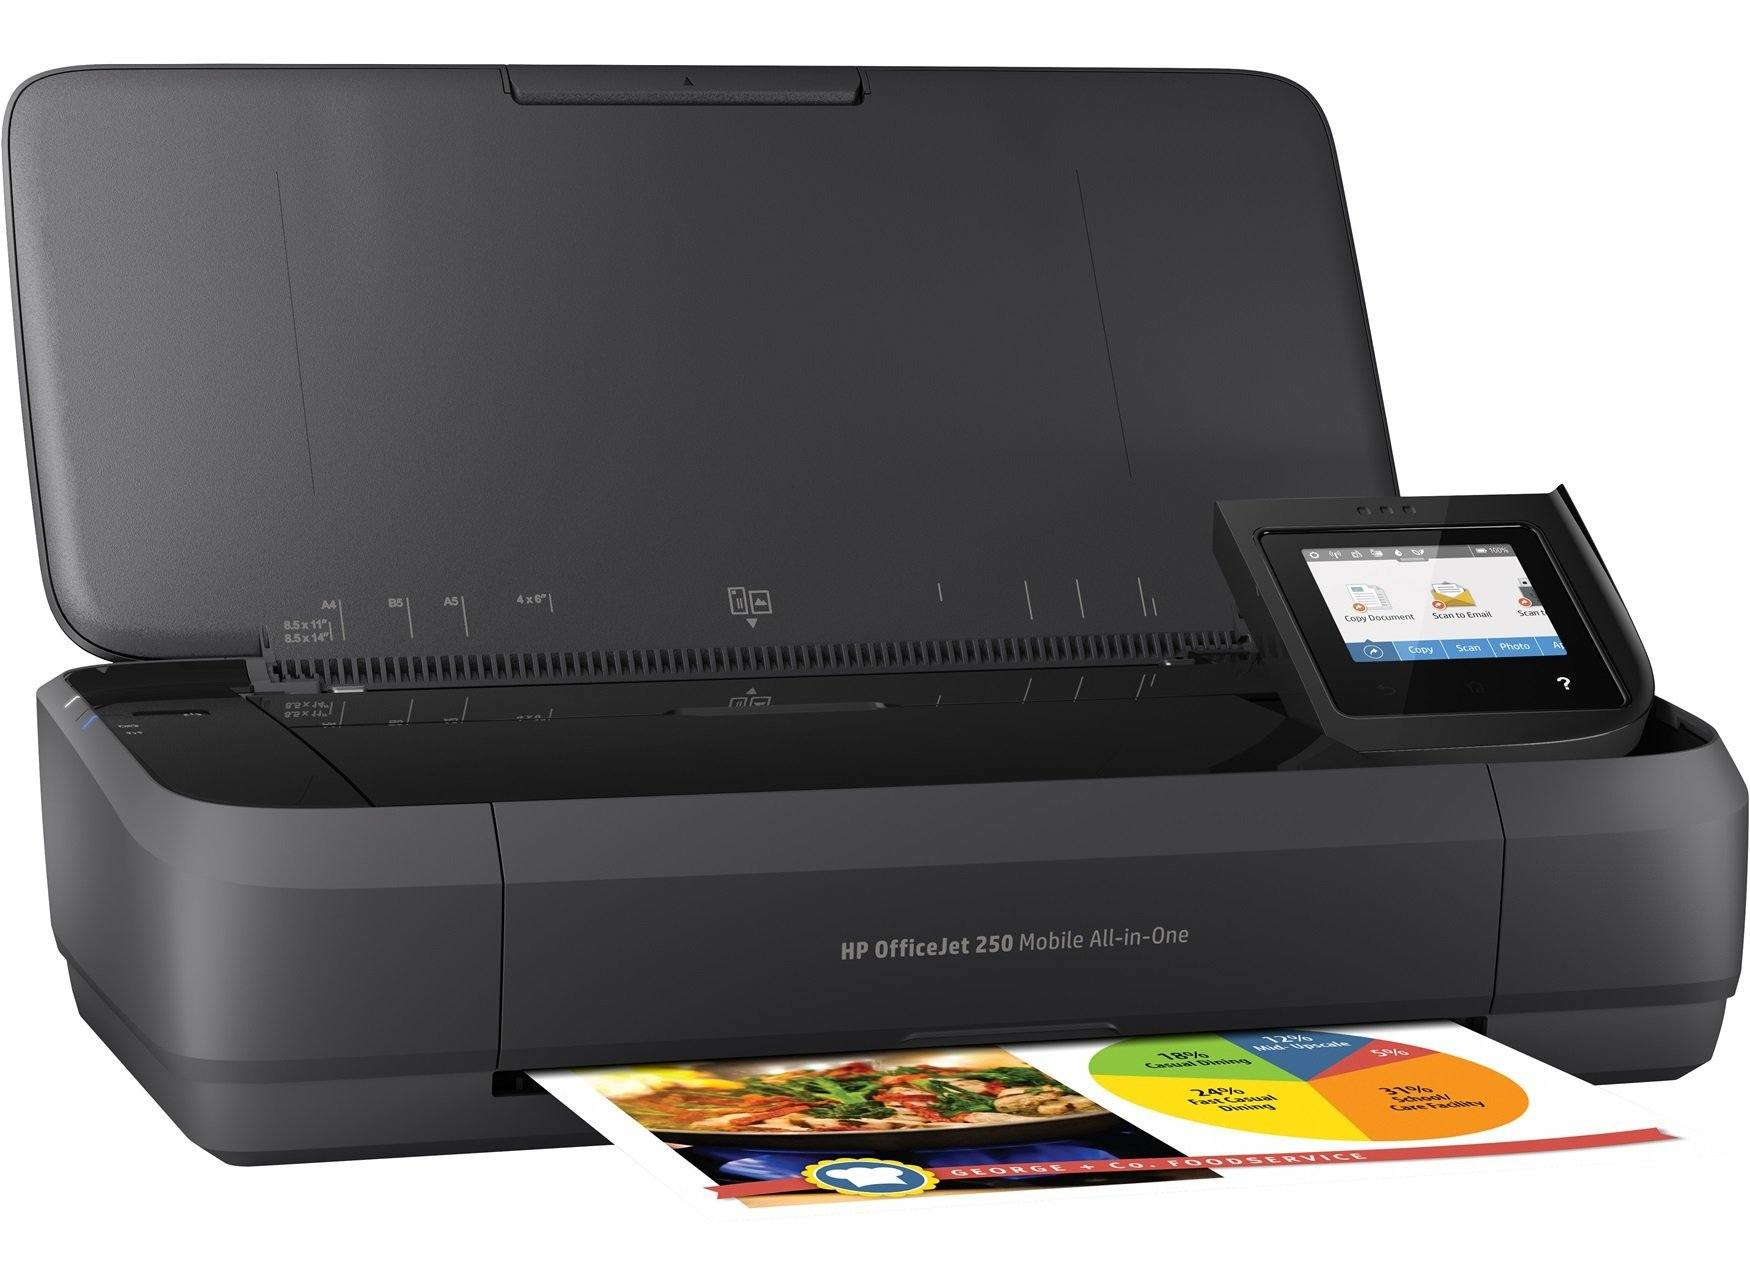 HP OfficeJet 250 All-in-One Photo Printer